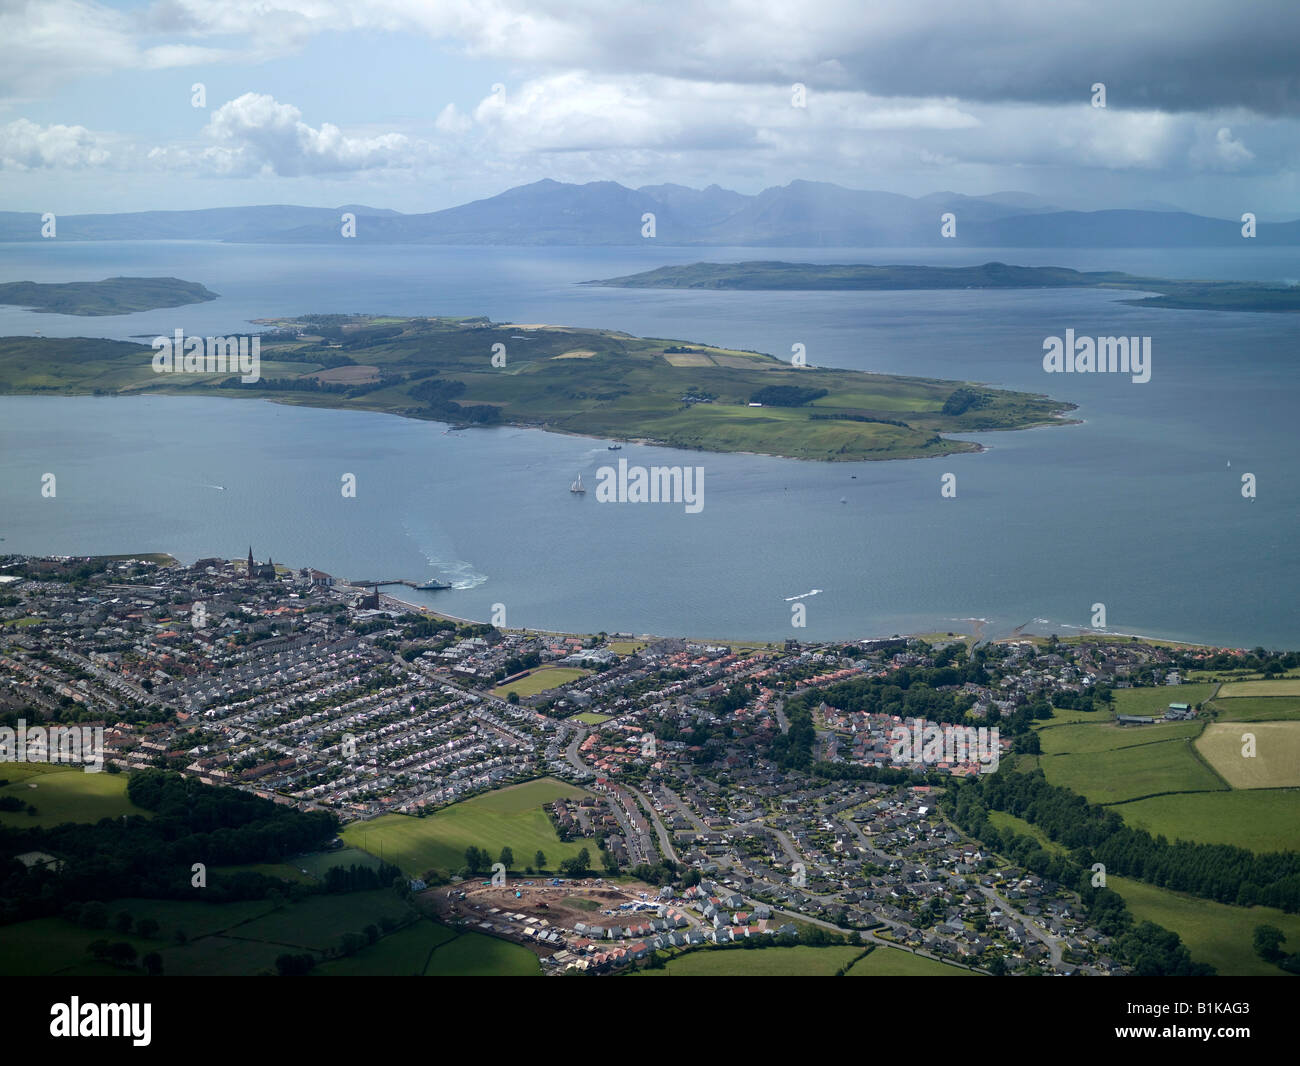 Largs and Little Cumbrae Island, in the Clyde Estuary, from the air, Western Scotland, Arran in the Distance. - Stock Image